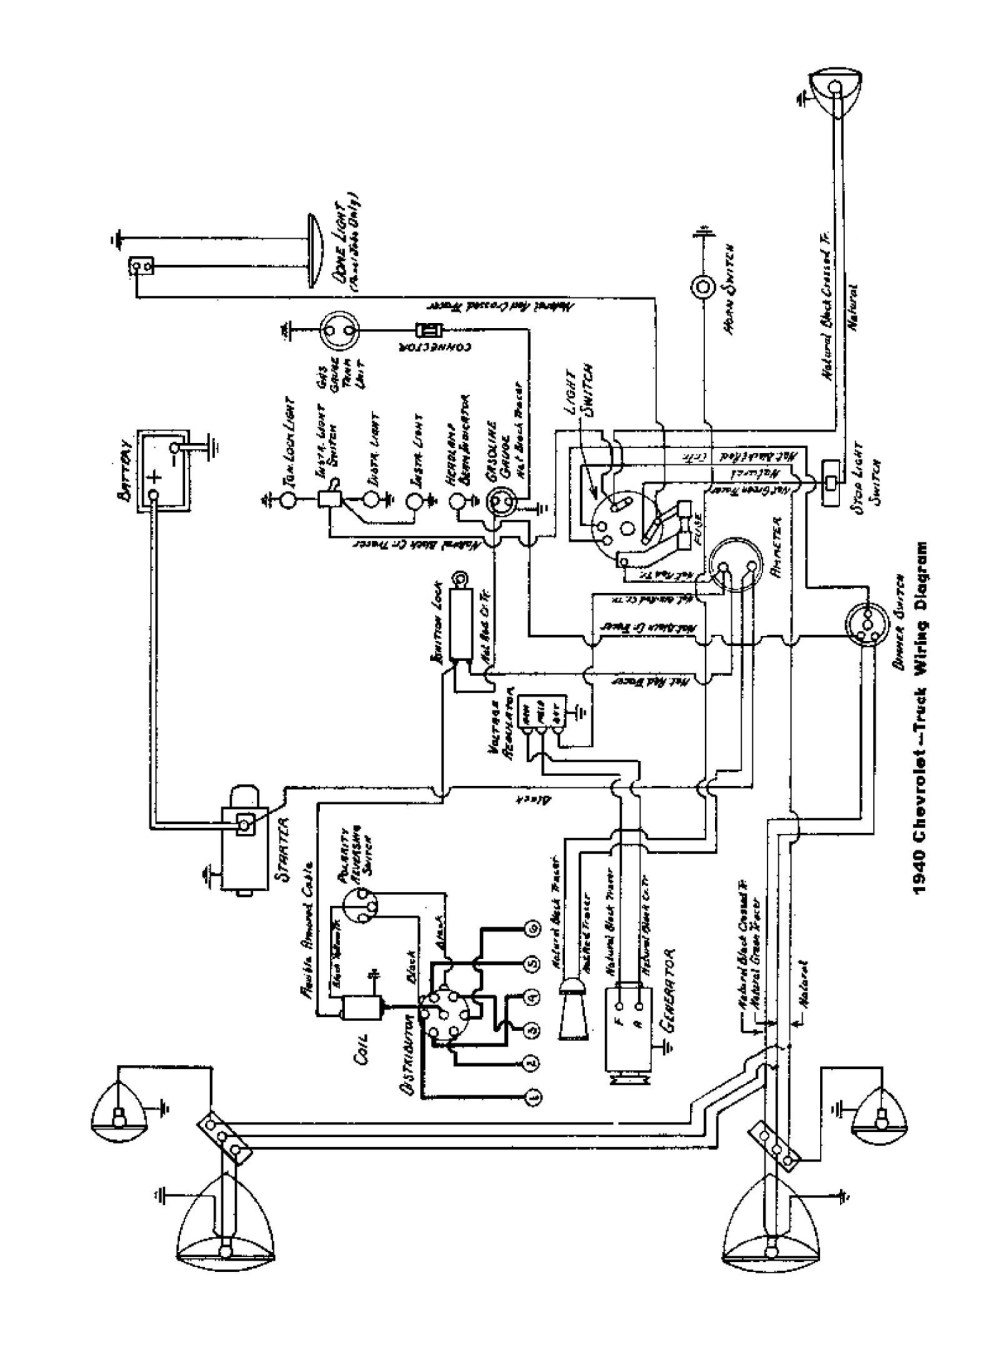 medium resolution of 1951 chevy truck wiring harness wiring diagram sort 51 chevy truck wiring harness wiring diagram review